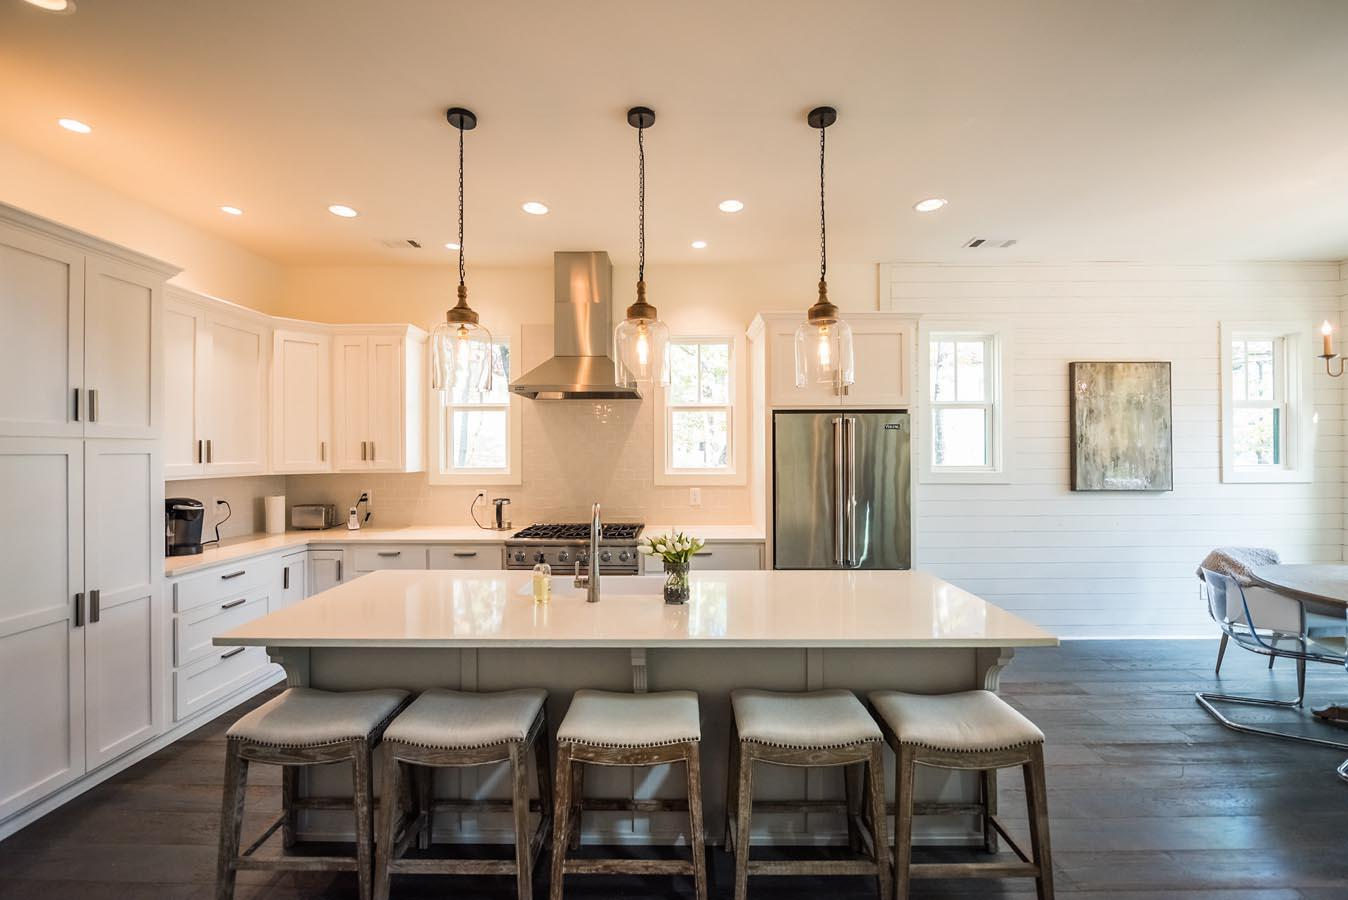 The Latest Kitchen Trends for your Redesign